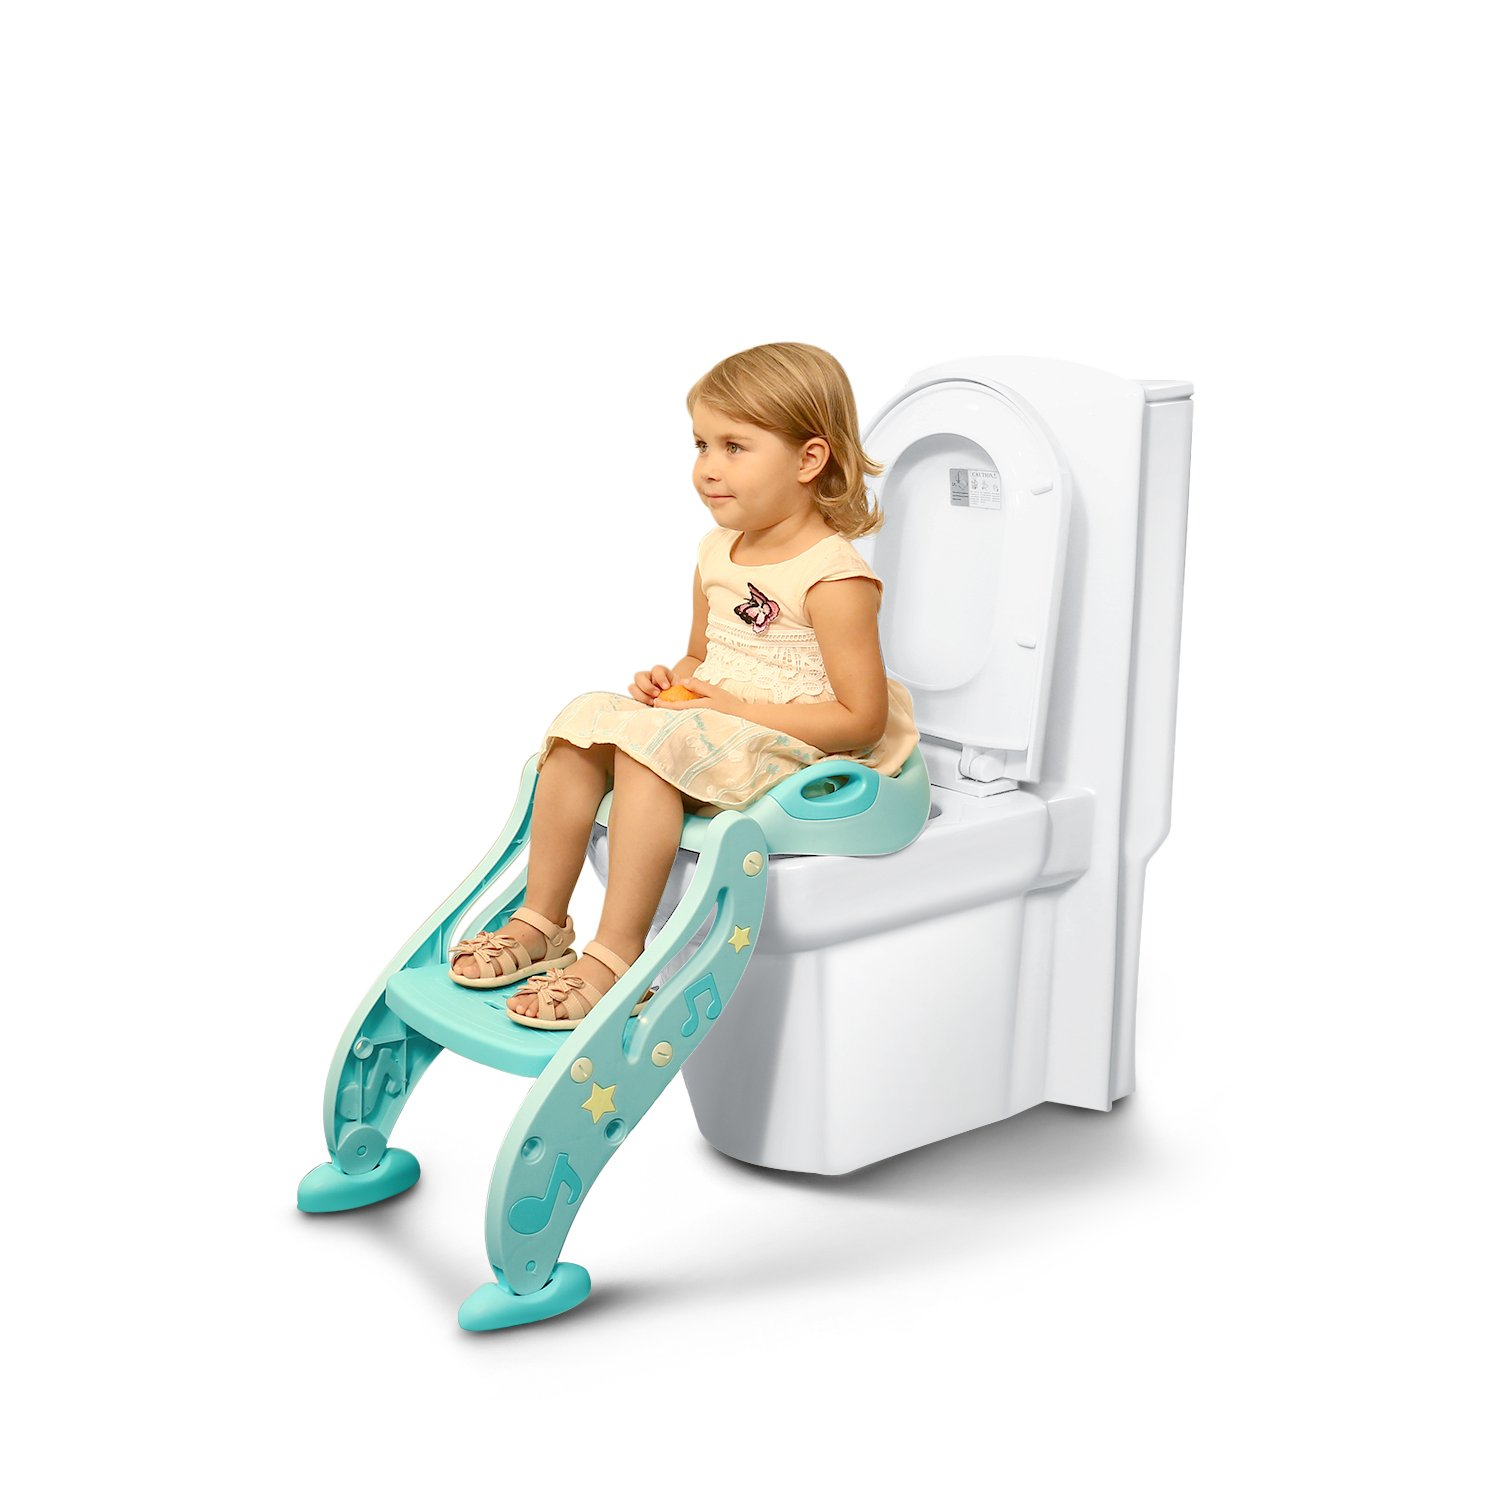 Pea Princess Toddlers Toilet Training Seat for boys and grils,Baby potty training toilet chair seat step, Non-Slip, Sturdy, Easy installation and storage,Adjustable Height, Comfortable Seat,green TDDM